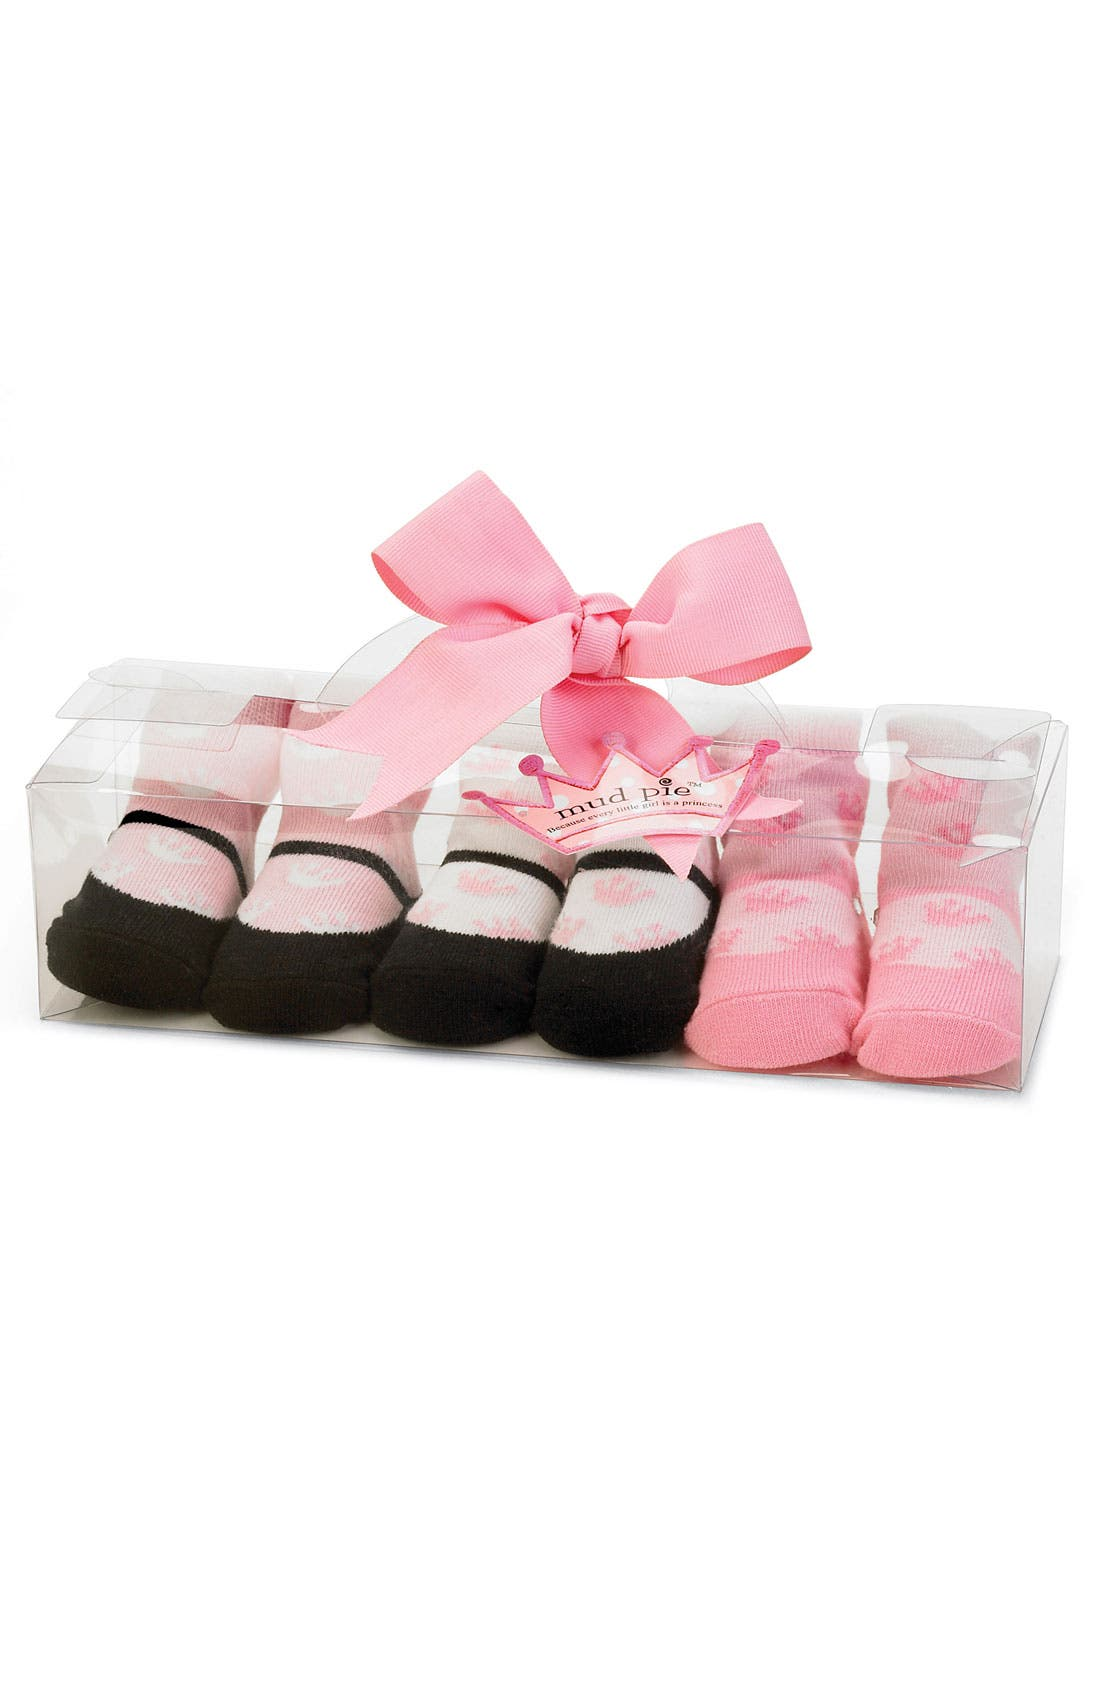 Main Image - Mud Pie Socks Set (3-Pack) (Baby Girls)